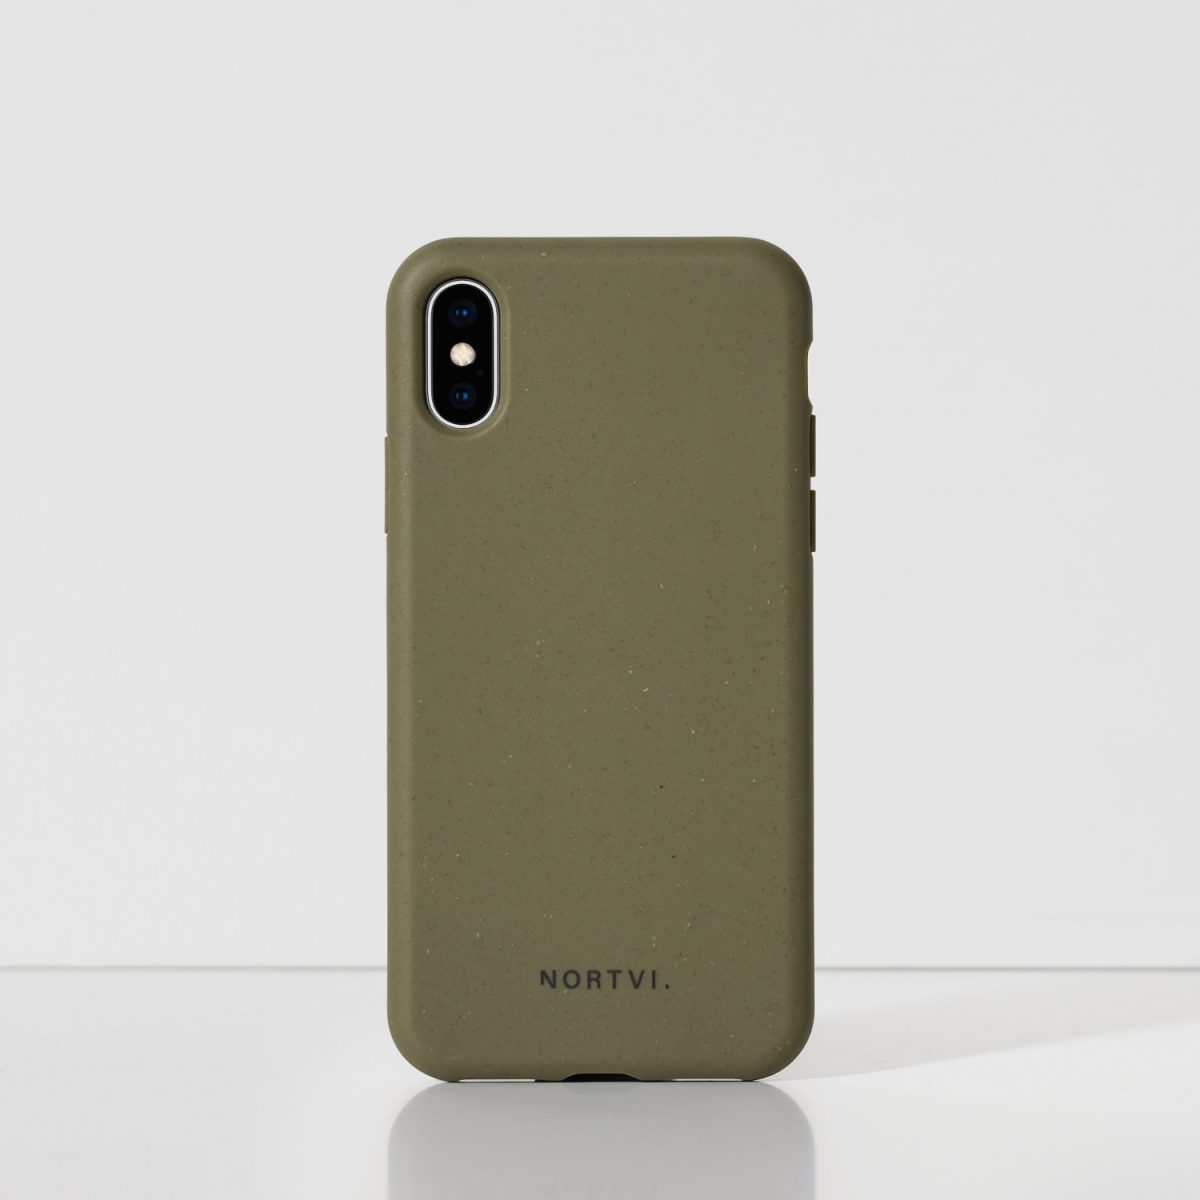 NORTVI green phone case for iPhone XS case